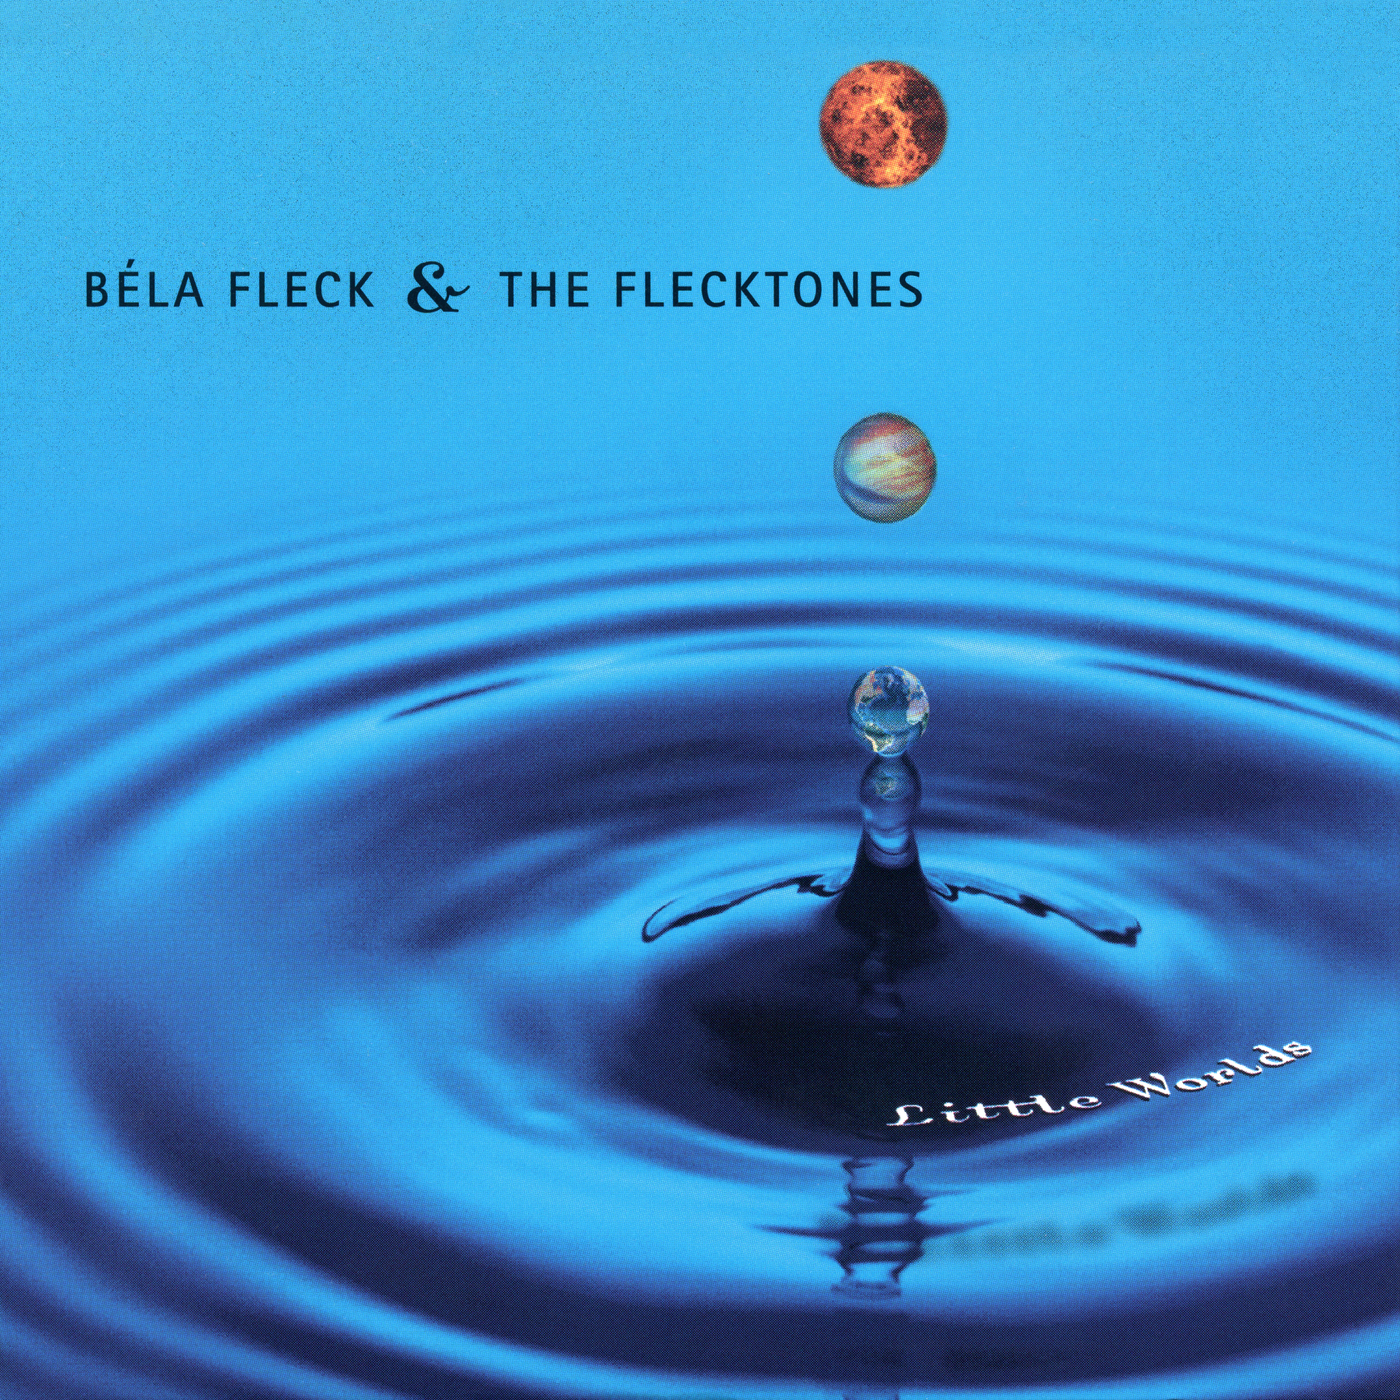 Little Worlds - Béla Fleck & The Flecktones